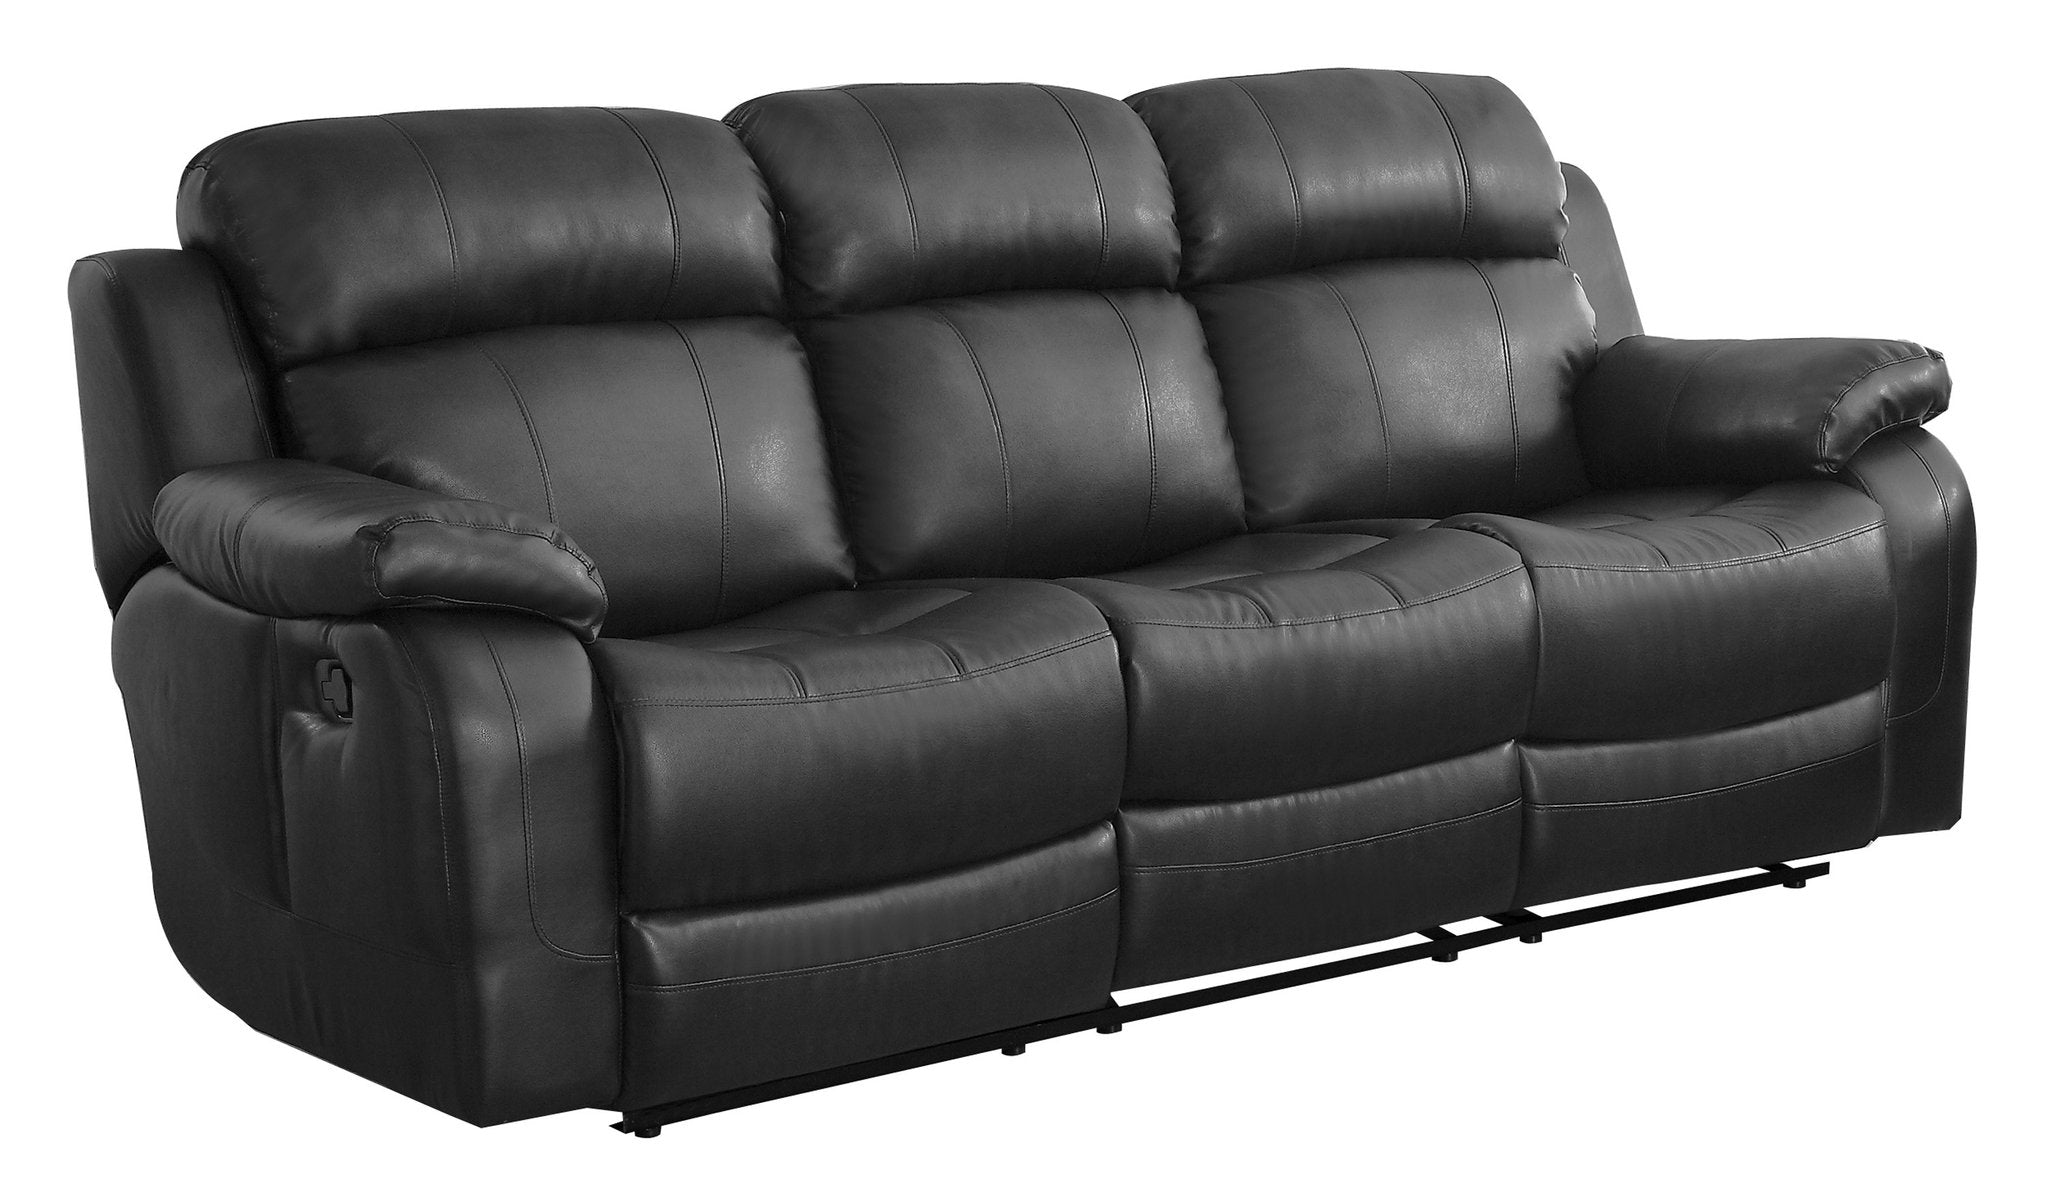 Marille Black Bonded Leather Double Reclining Sofa 9724